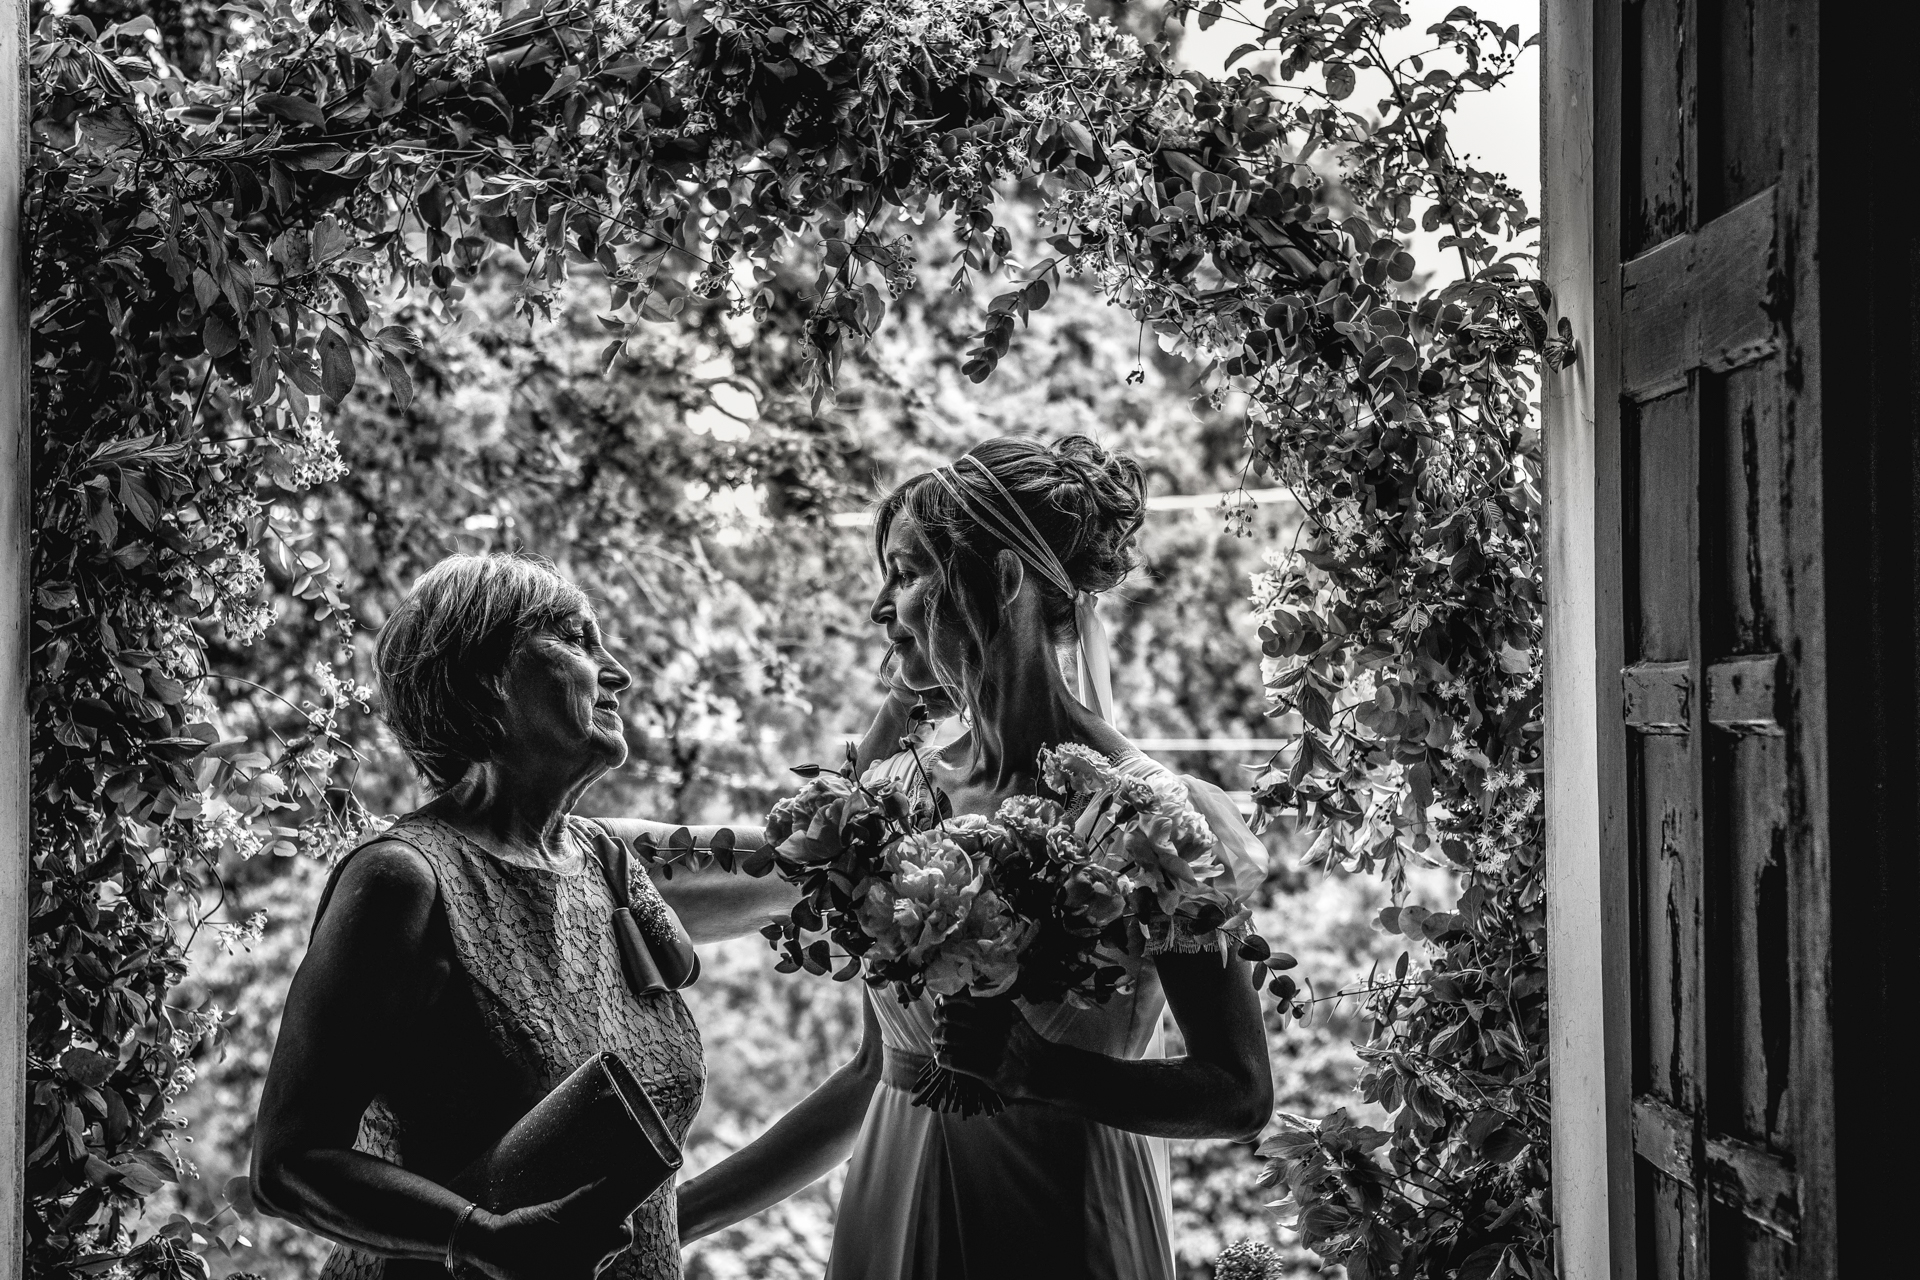 Forli-Cesena Wedding Photography | The brides mother takes a moment to grasp the hand of her daughter